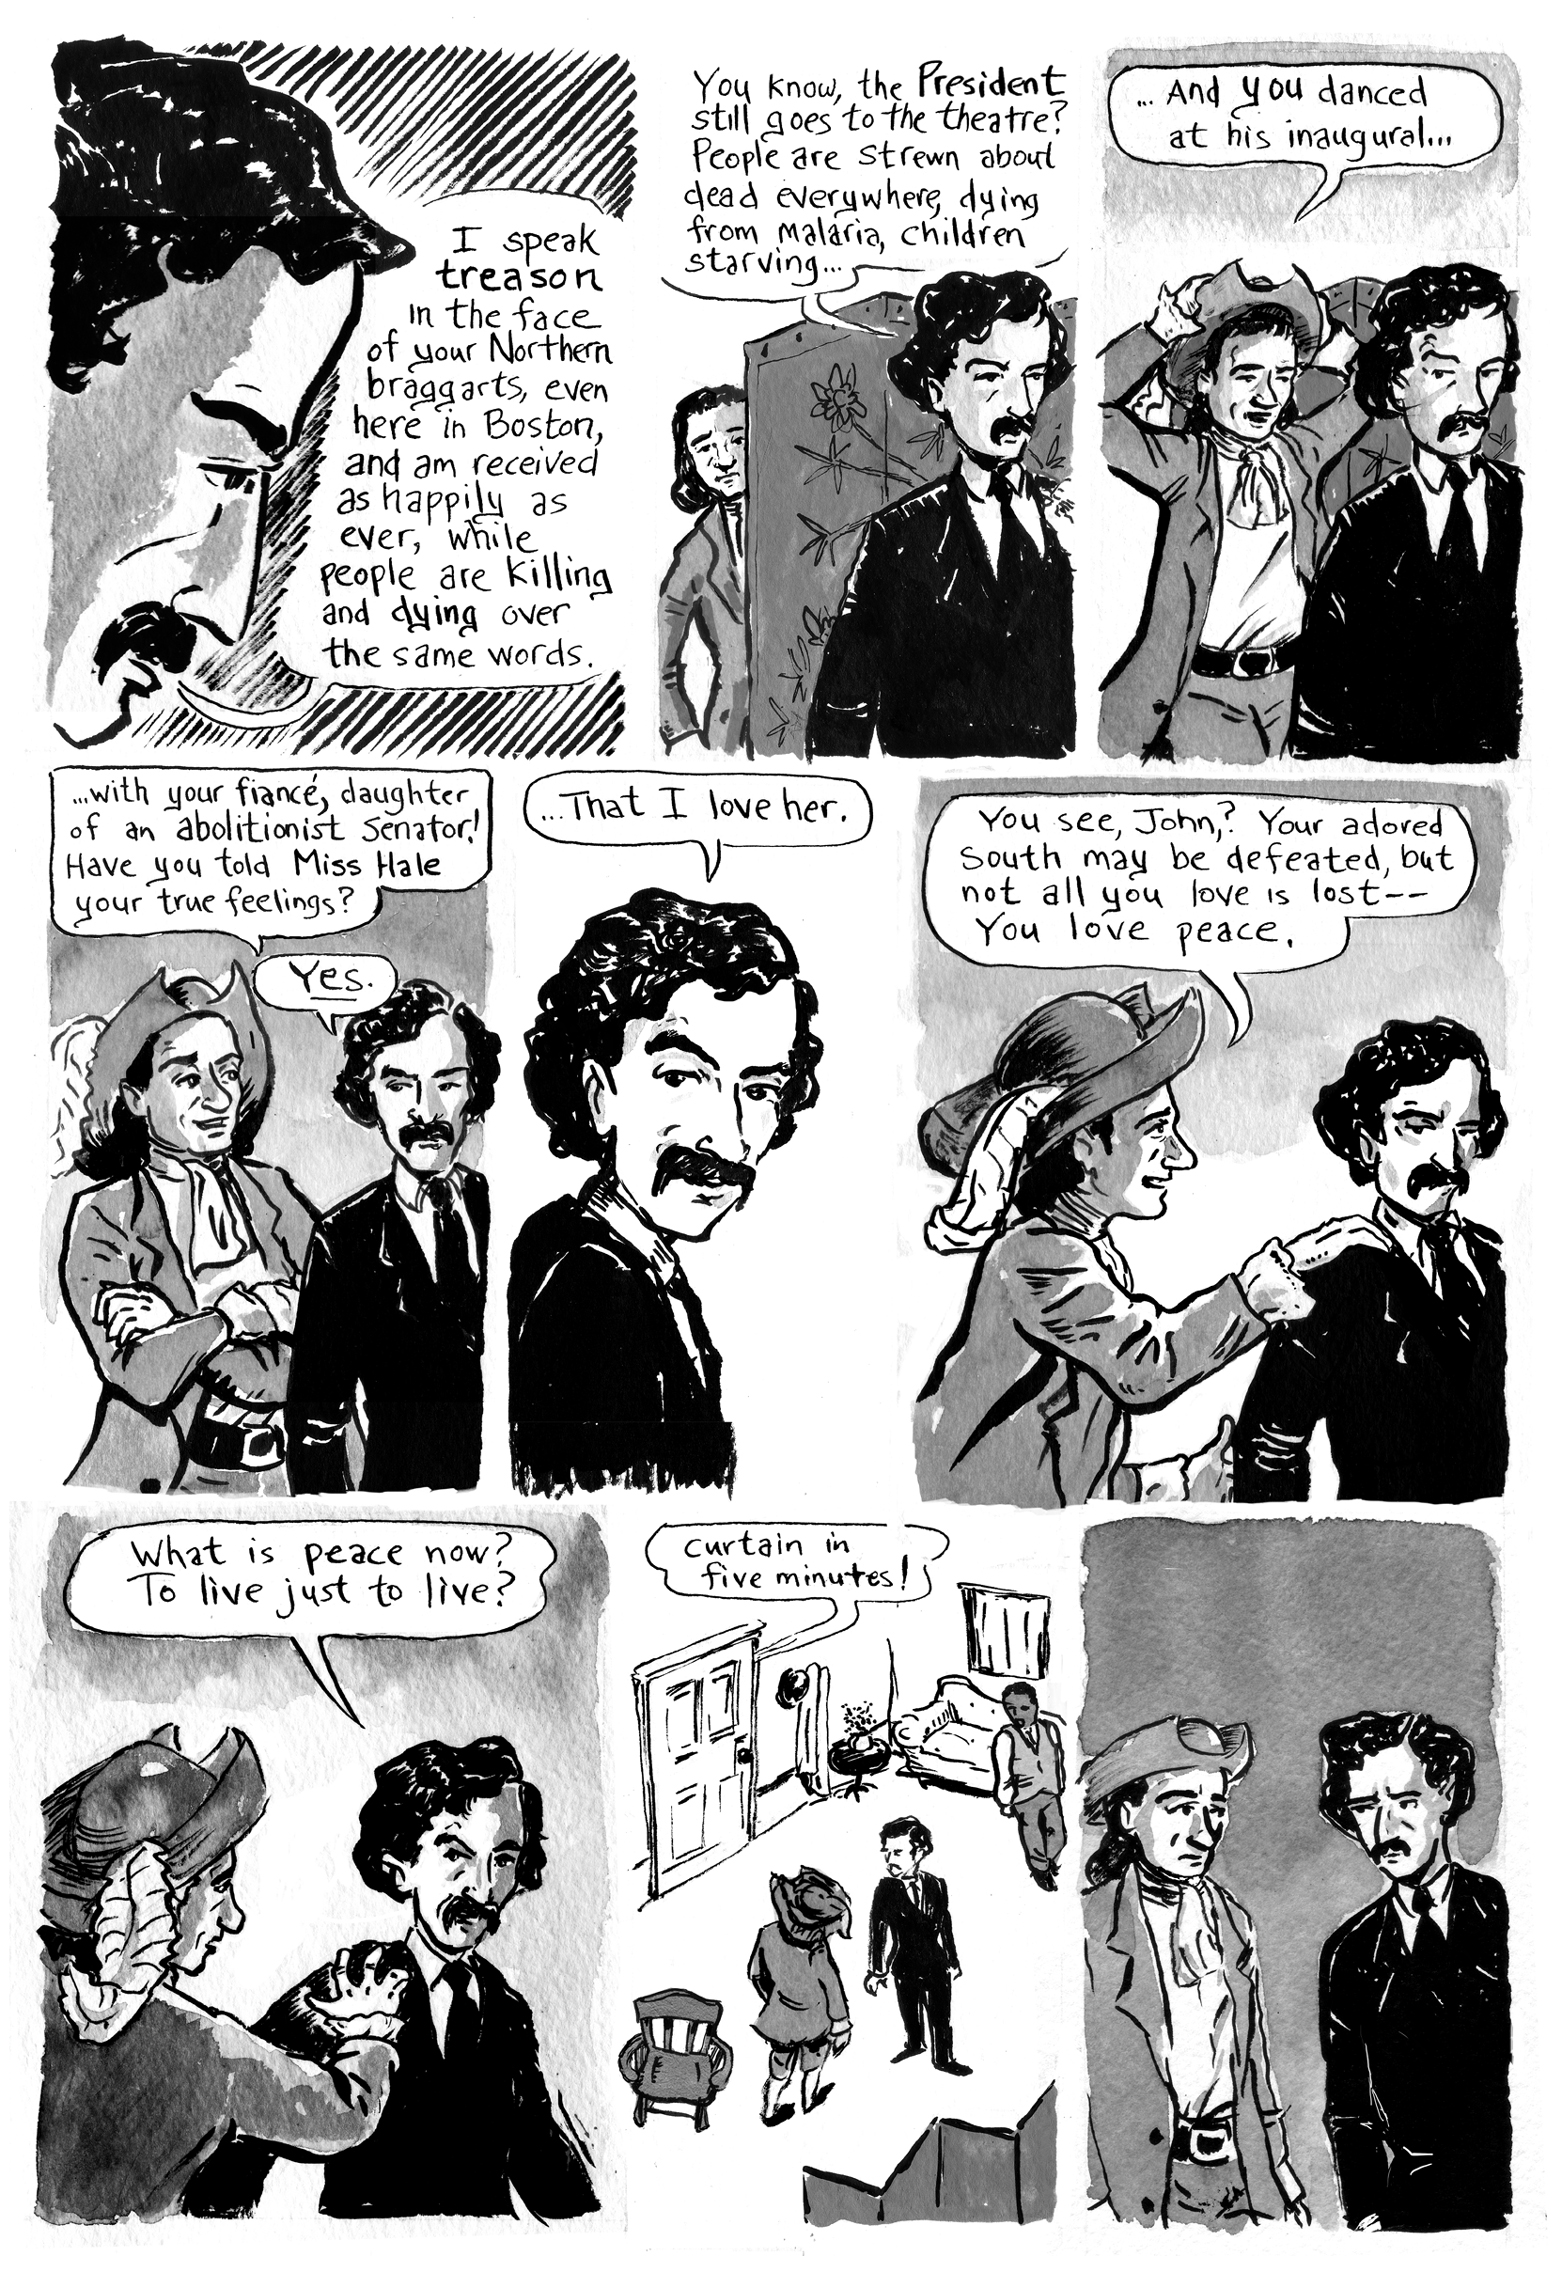 The Last Act, Page 4